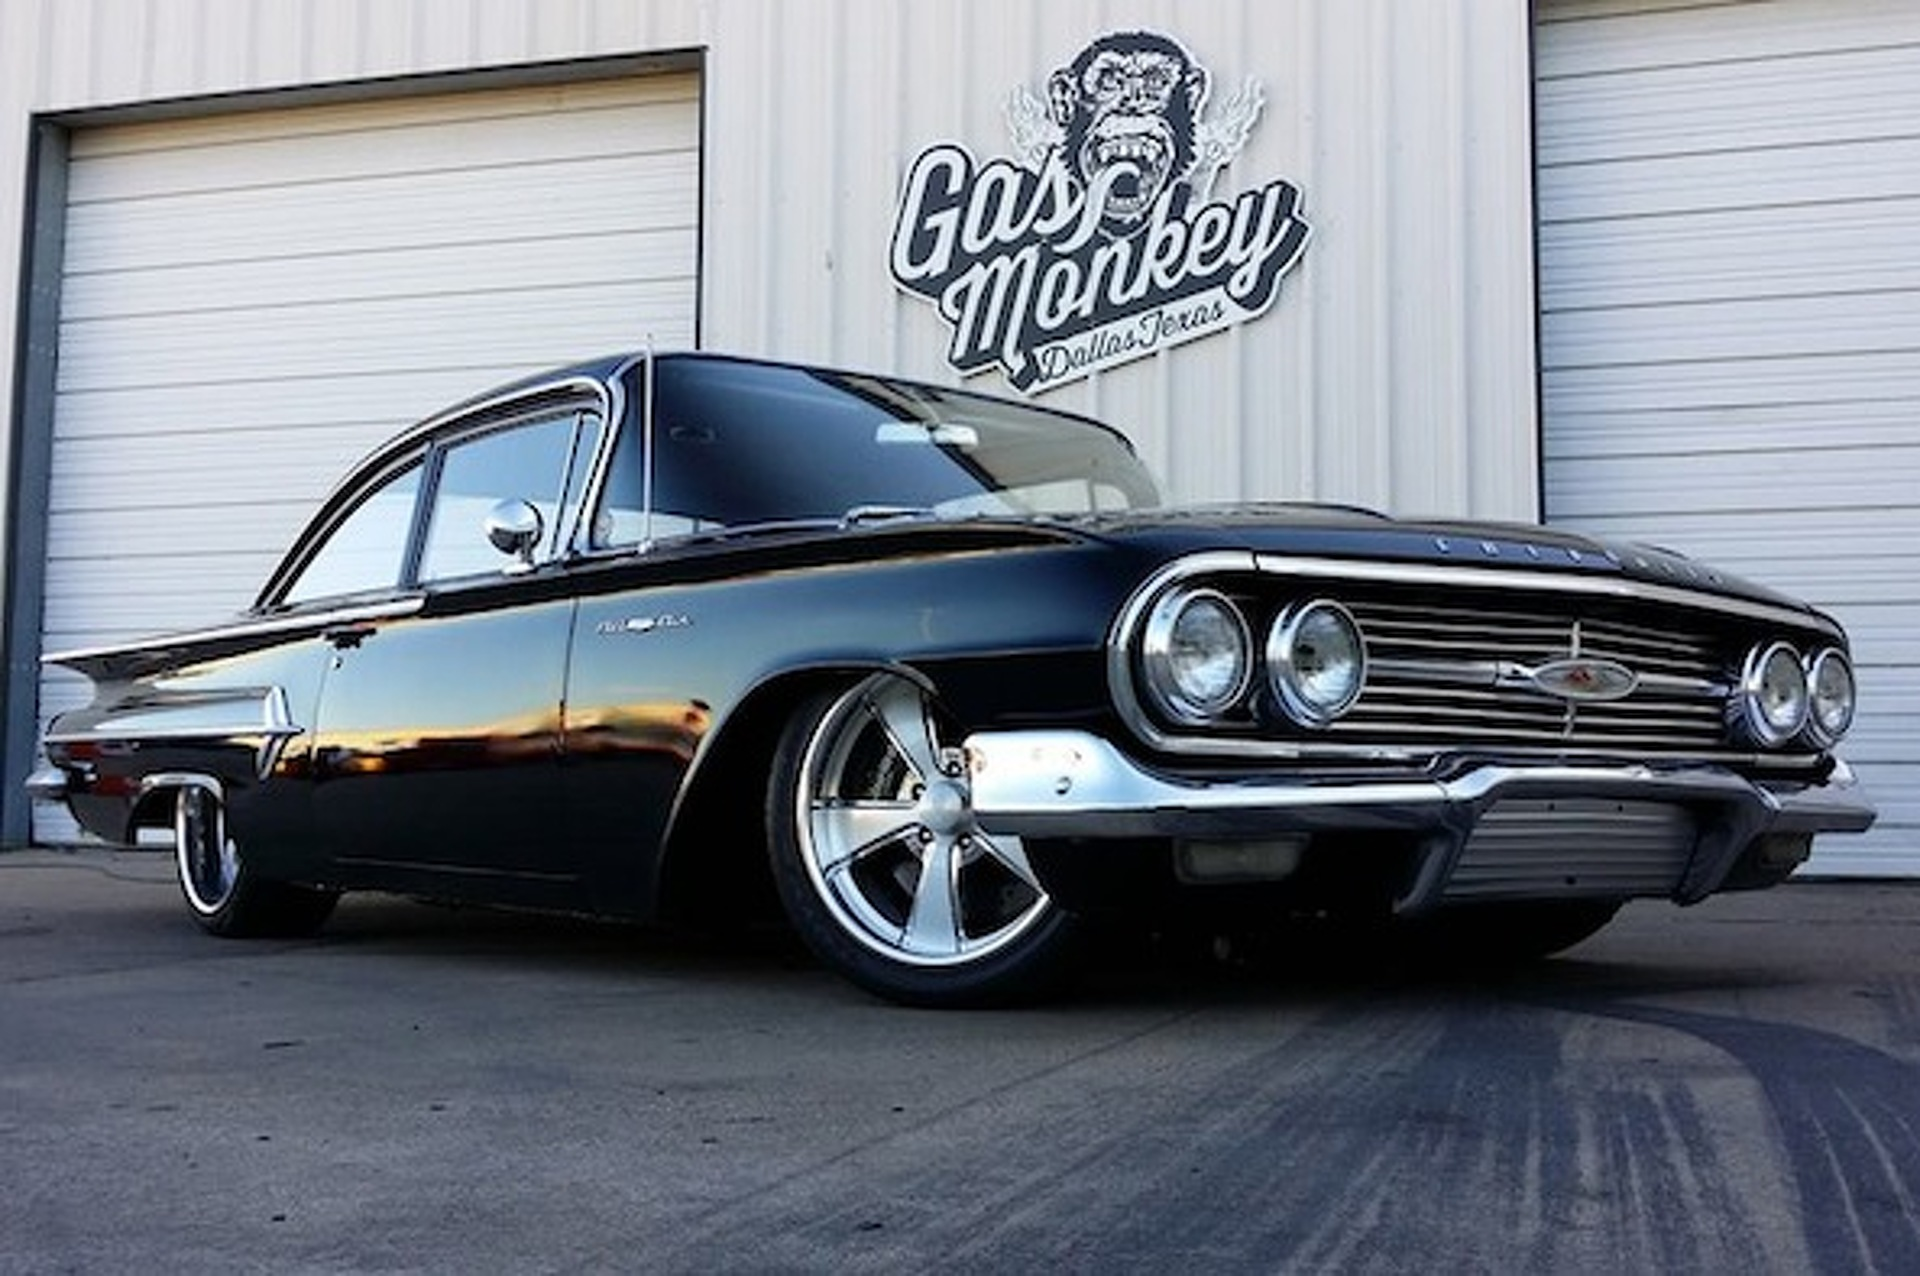 2018 chevrolet bel air. plain 2018 gas monkey garage builds one big bold chevy bel air inside 2018 chevrolet bel air